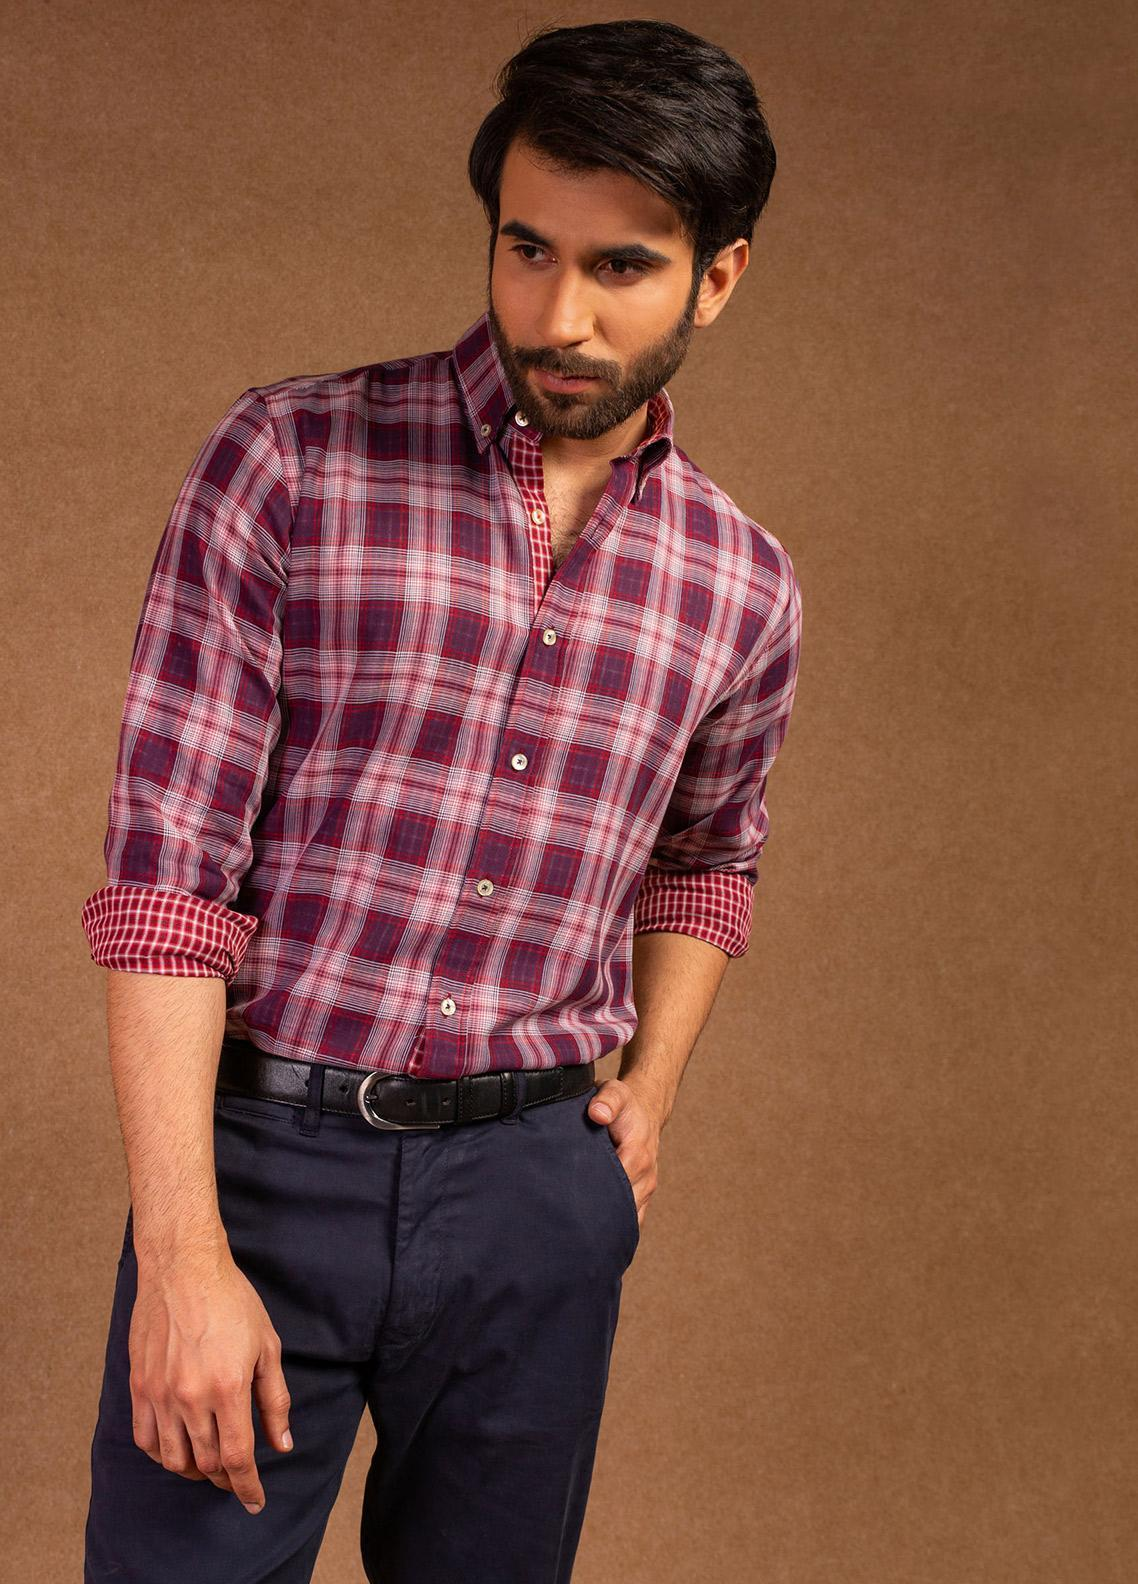 Brumano Cotton Formal Shirts for Men - Purple BRM-581